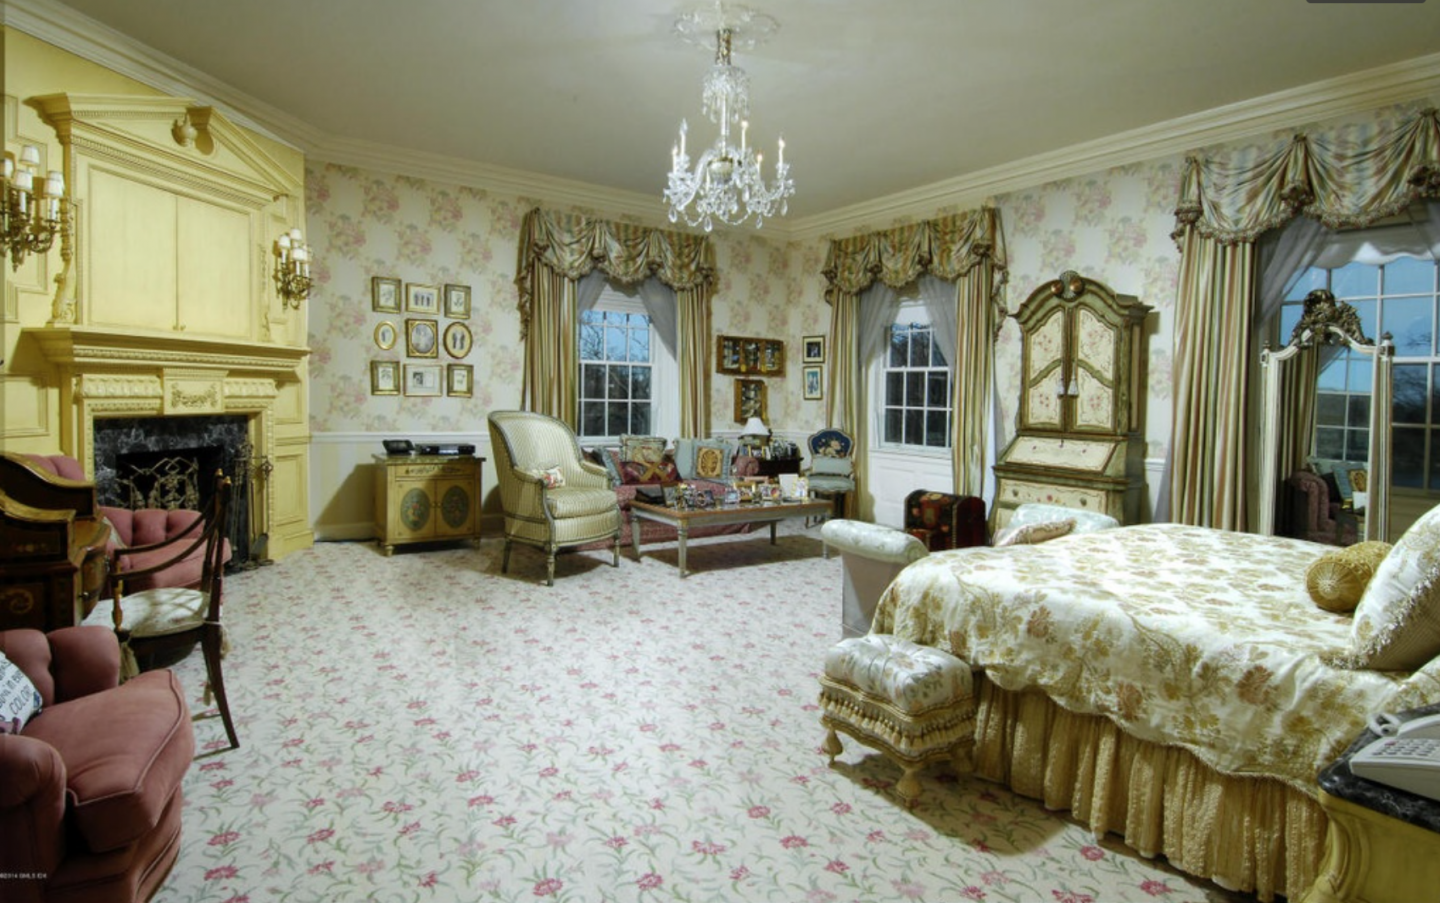 Some rooms present a garish Marie Antoinette-ish vibe.